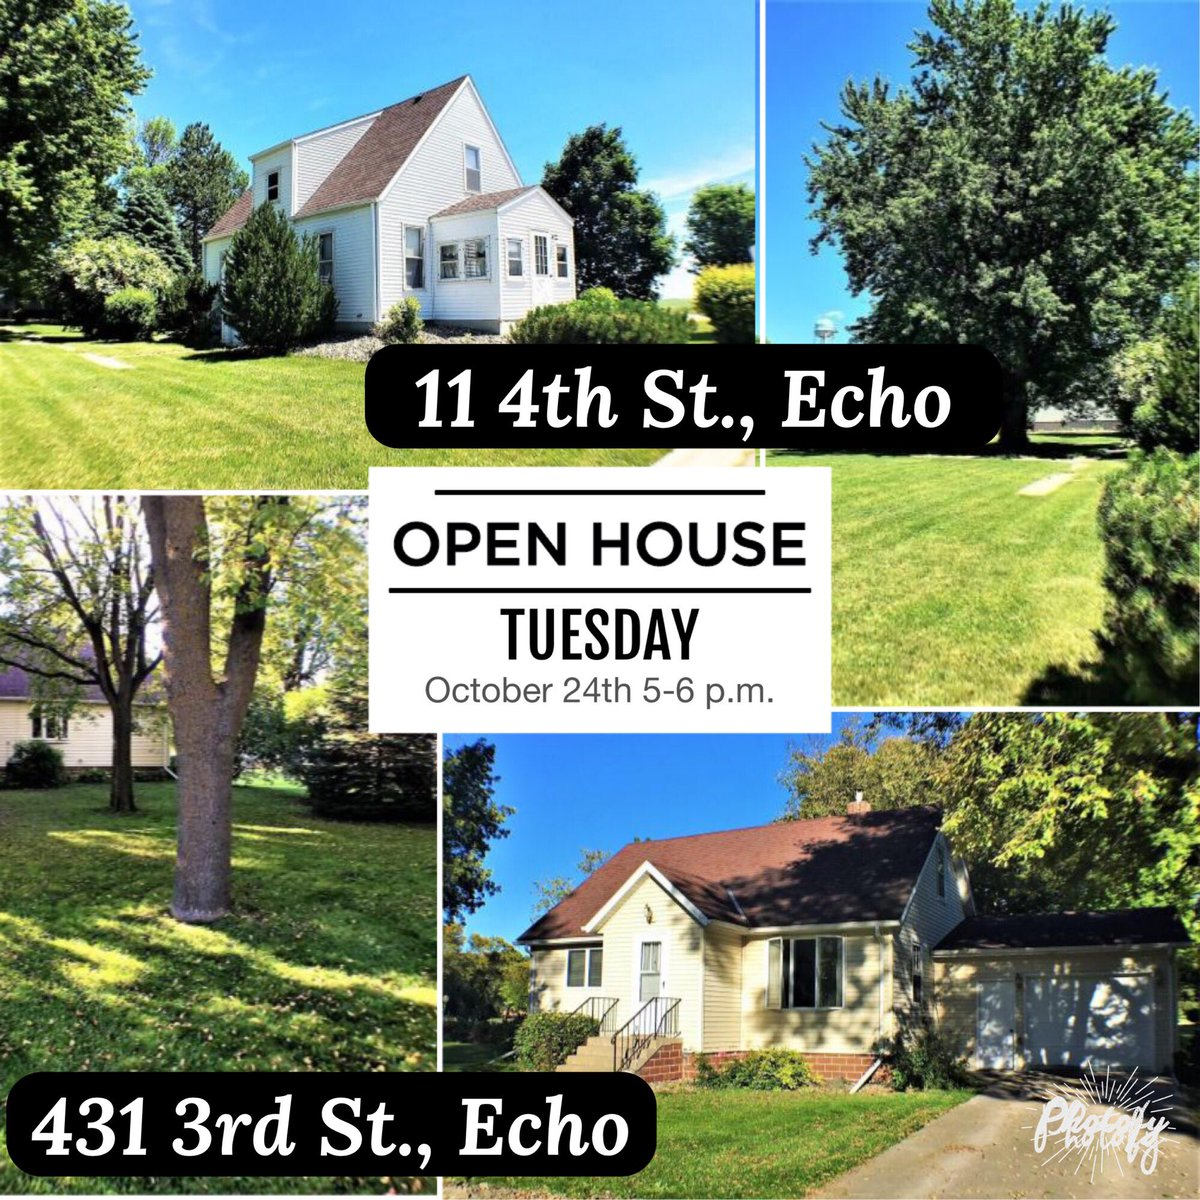 Join us for  OPEN HOUSES tomorrow!  Visit  http:// bit.ly/1XmeHIB  &nbsp;   for more info! #realestate #listing #realty #realtor #homesale #buyingahome #buying #selling #househunting #property #home #house #housing #onthemarket #openhouse #openhousetuesday #echomn #redwoodarea<br>http://pic.twitter.com/wpcuLSqhfM